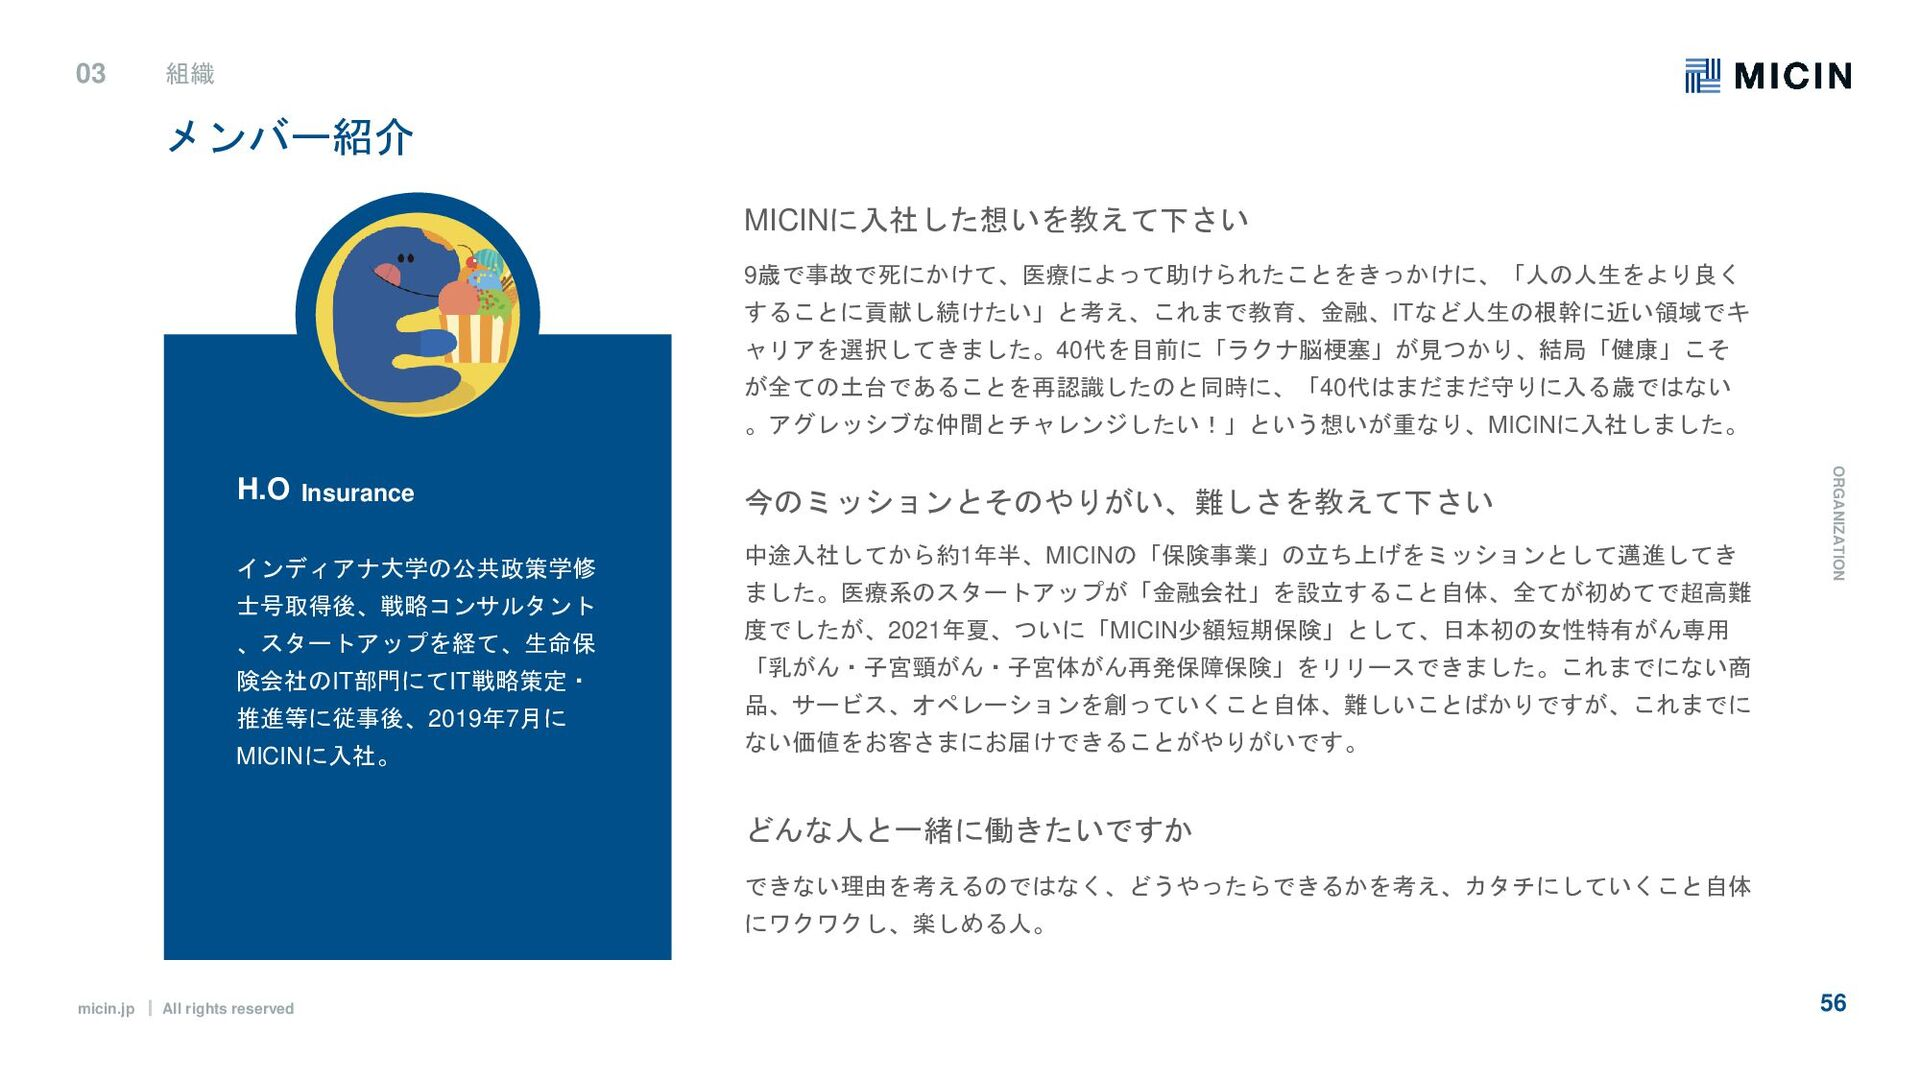 micin.jp ʛ All rights reserved 56 開発環境(クリエイティブ職...